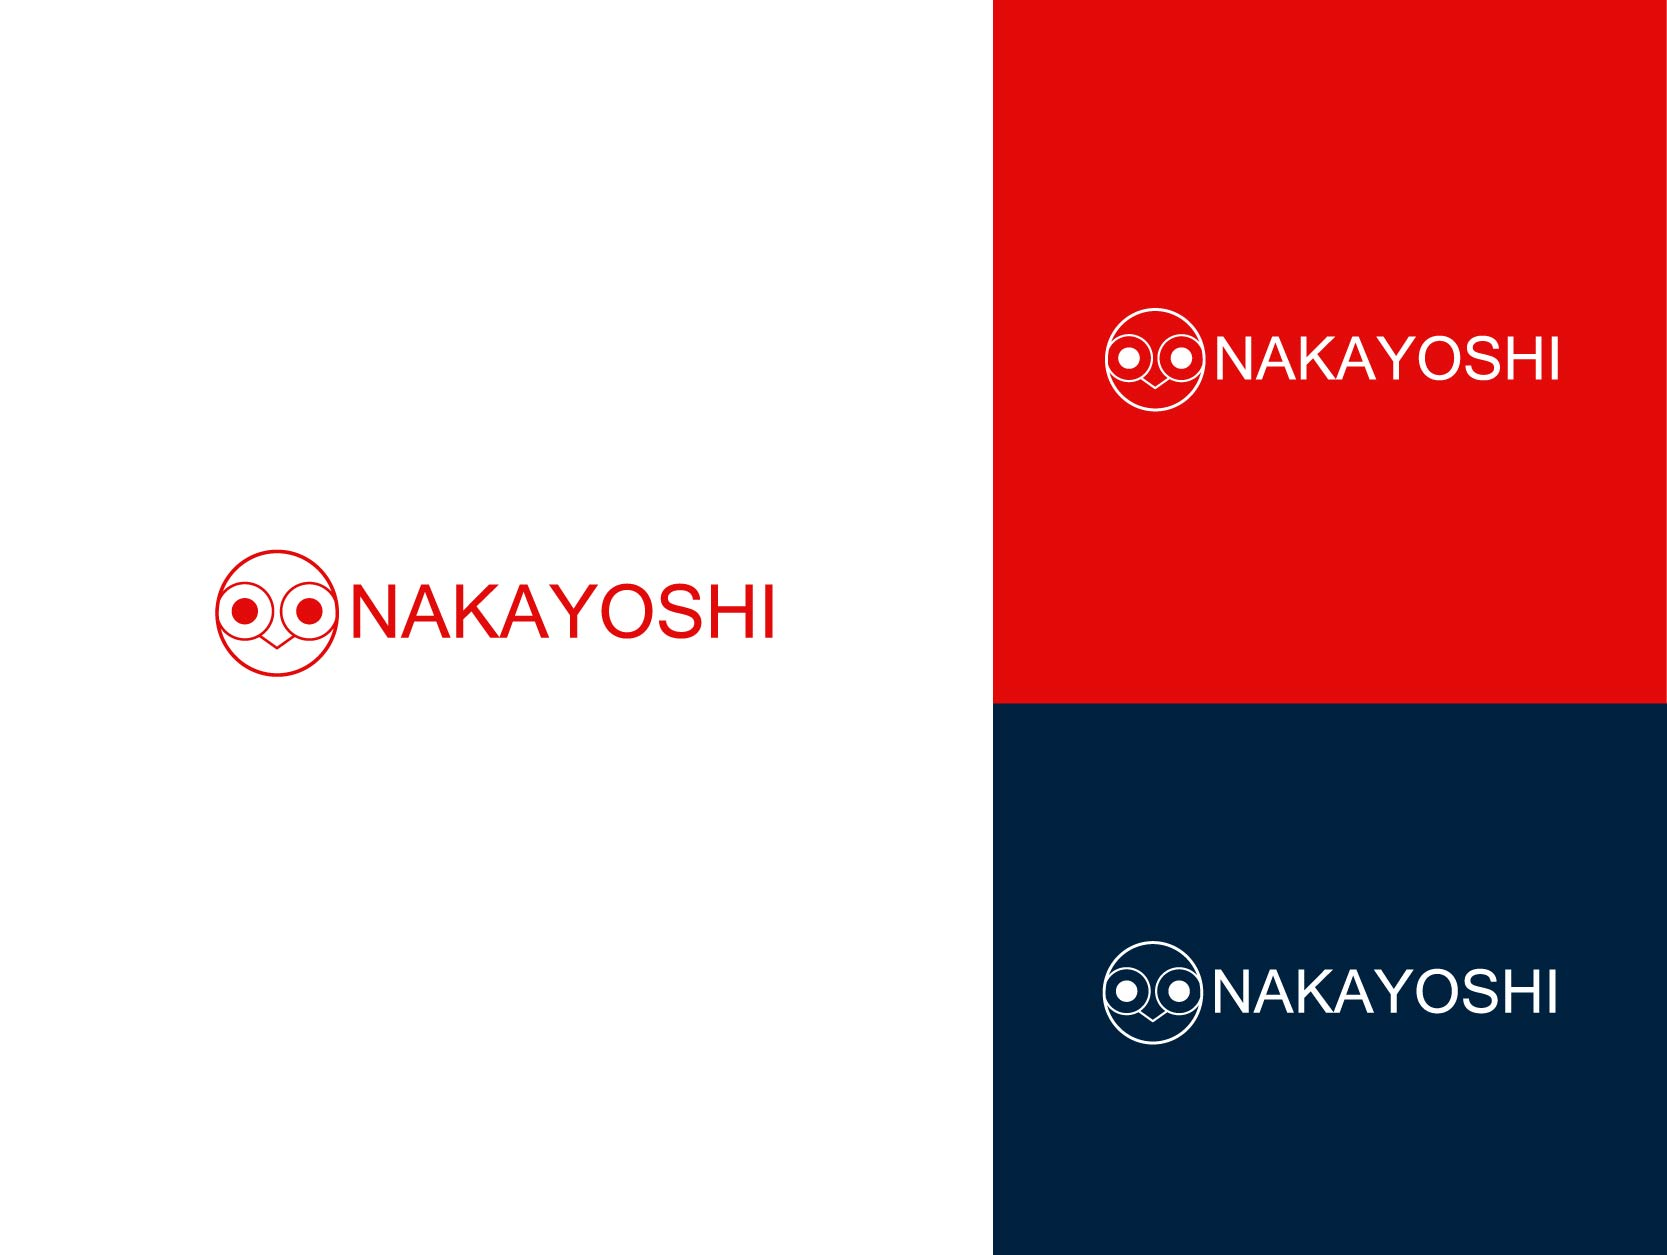 Logo Design by Osi Indra - Entry No. 38 in the Logo Design Contest Imaginative Logo Design for NAKAYOSHI.